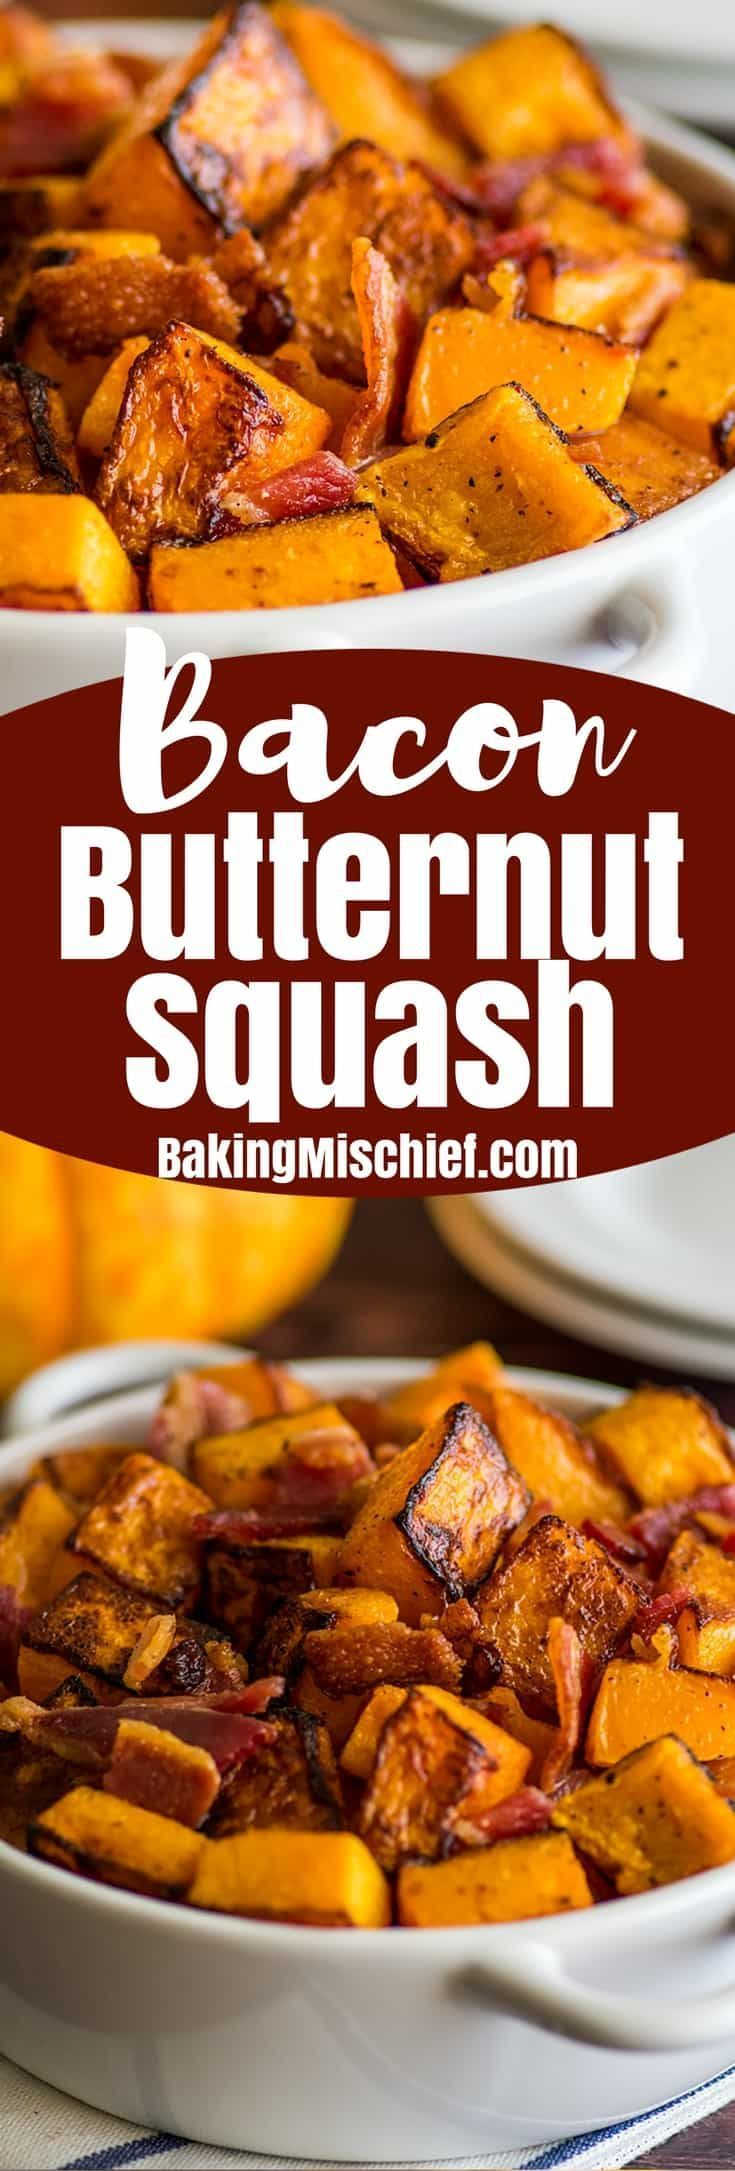 Photo of Roasted Bacon and Butternut Squash Side Dish